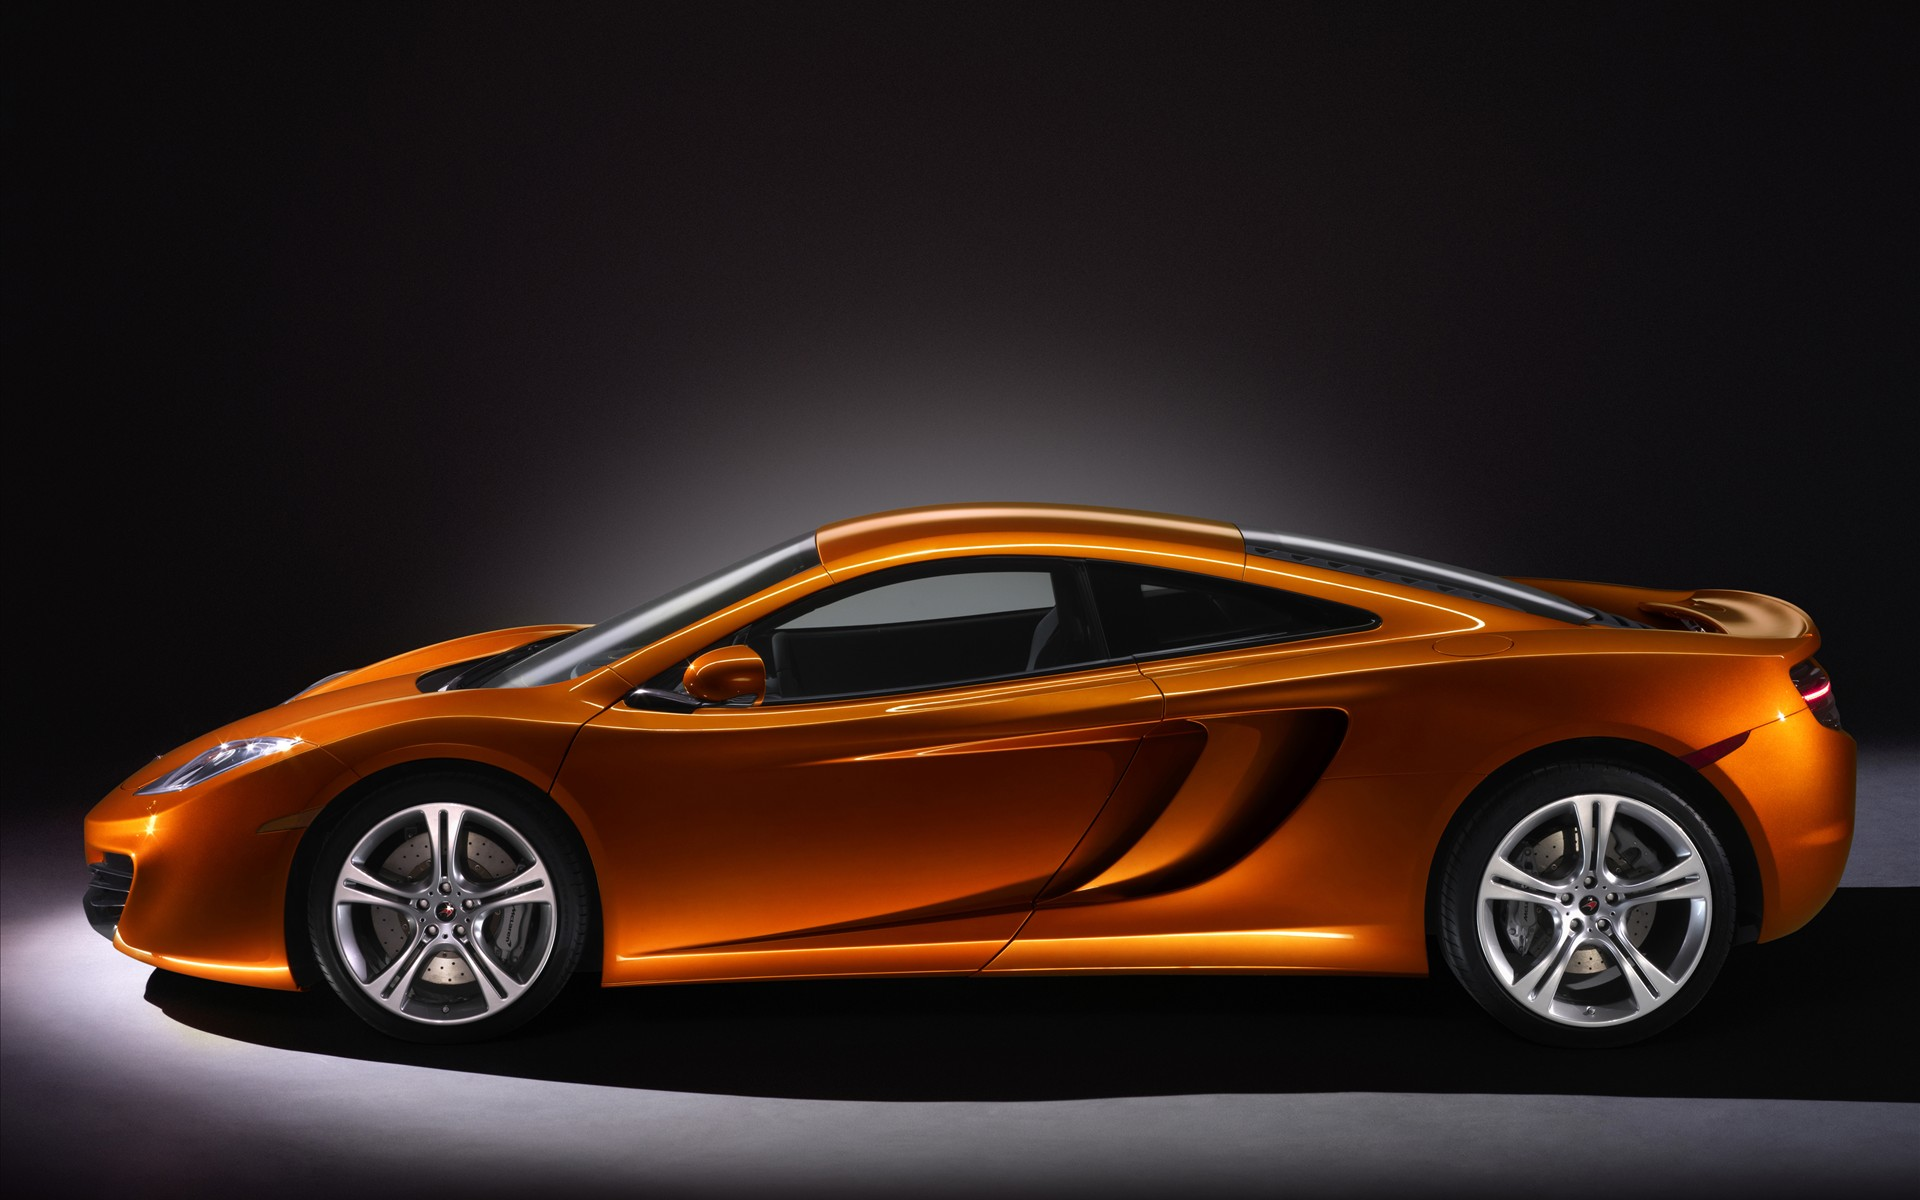 http://www.100hdwallpapers.com/wallpapers/1920x1200/2011_mclaren_mp4_12c-widescreen_wallpapers.jpg